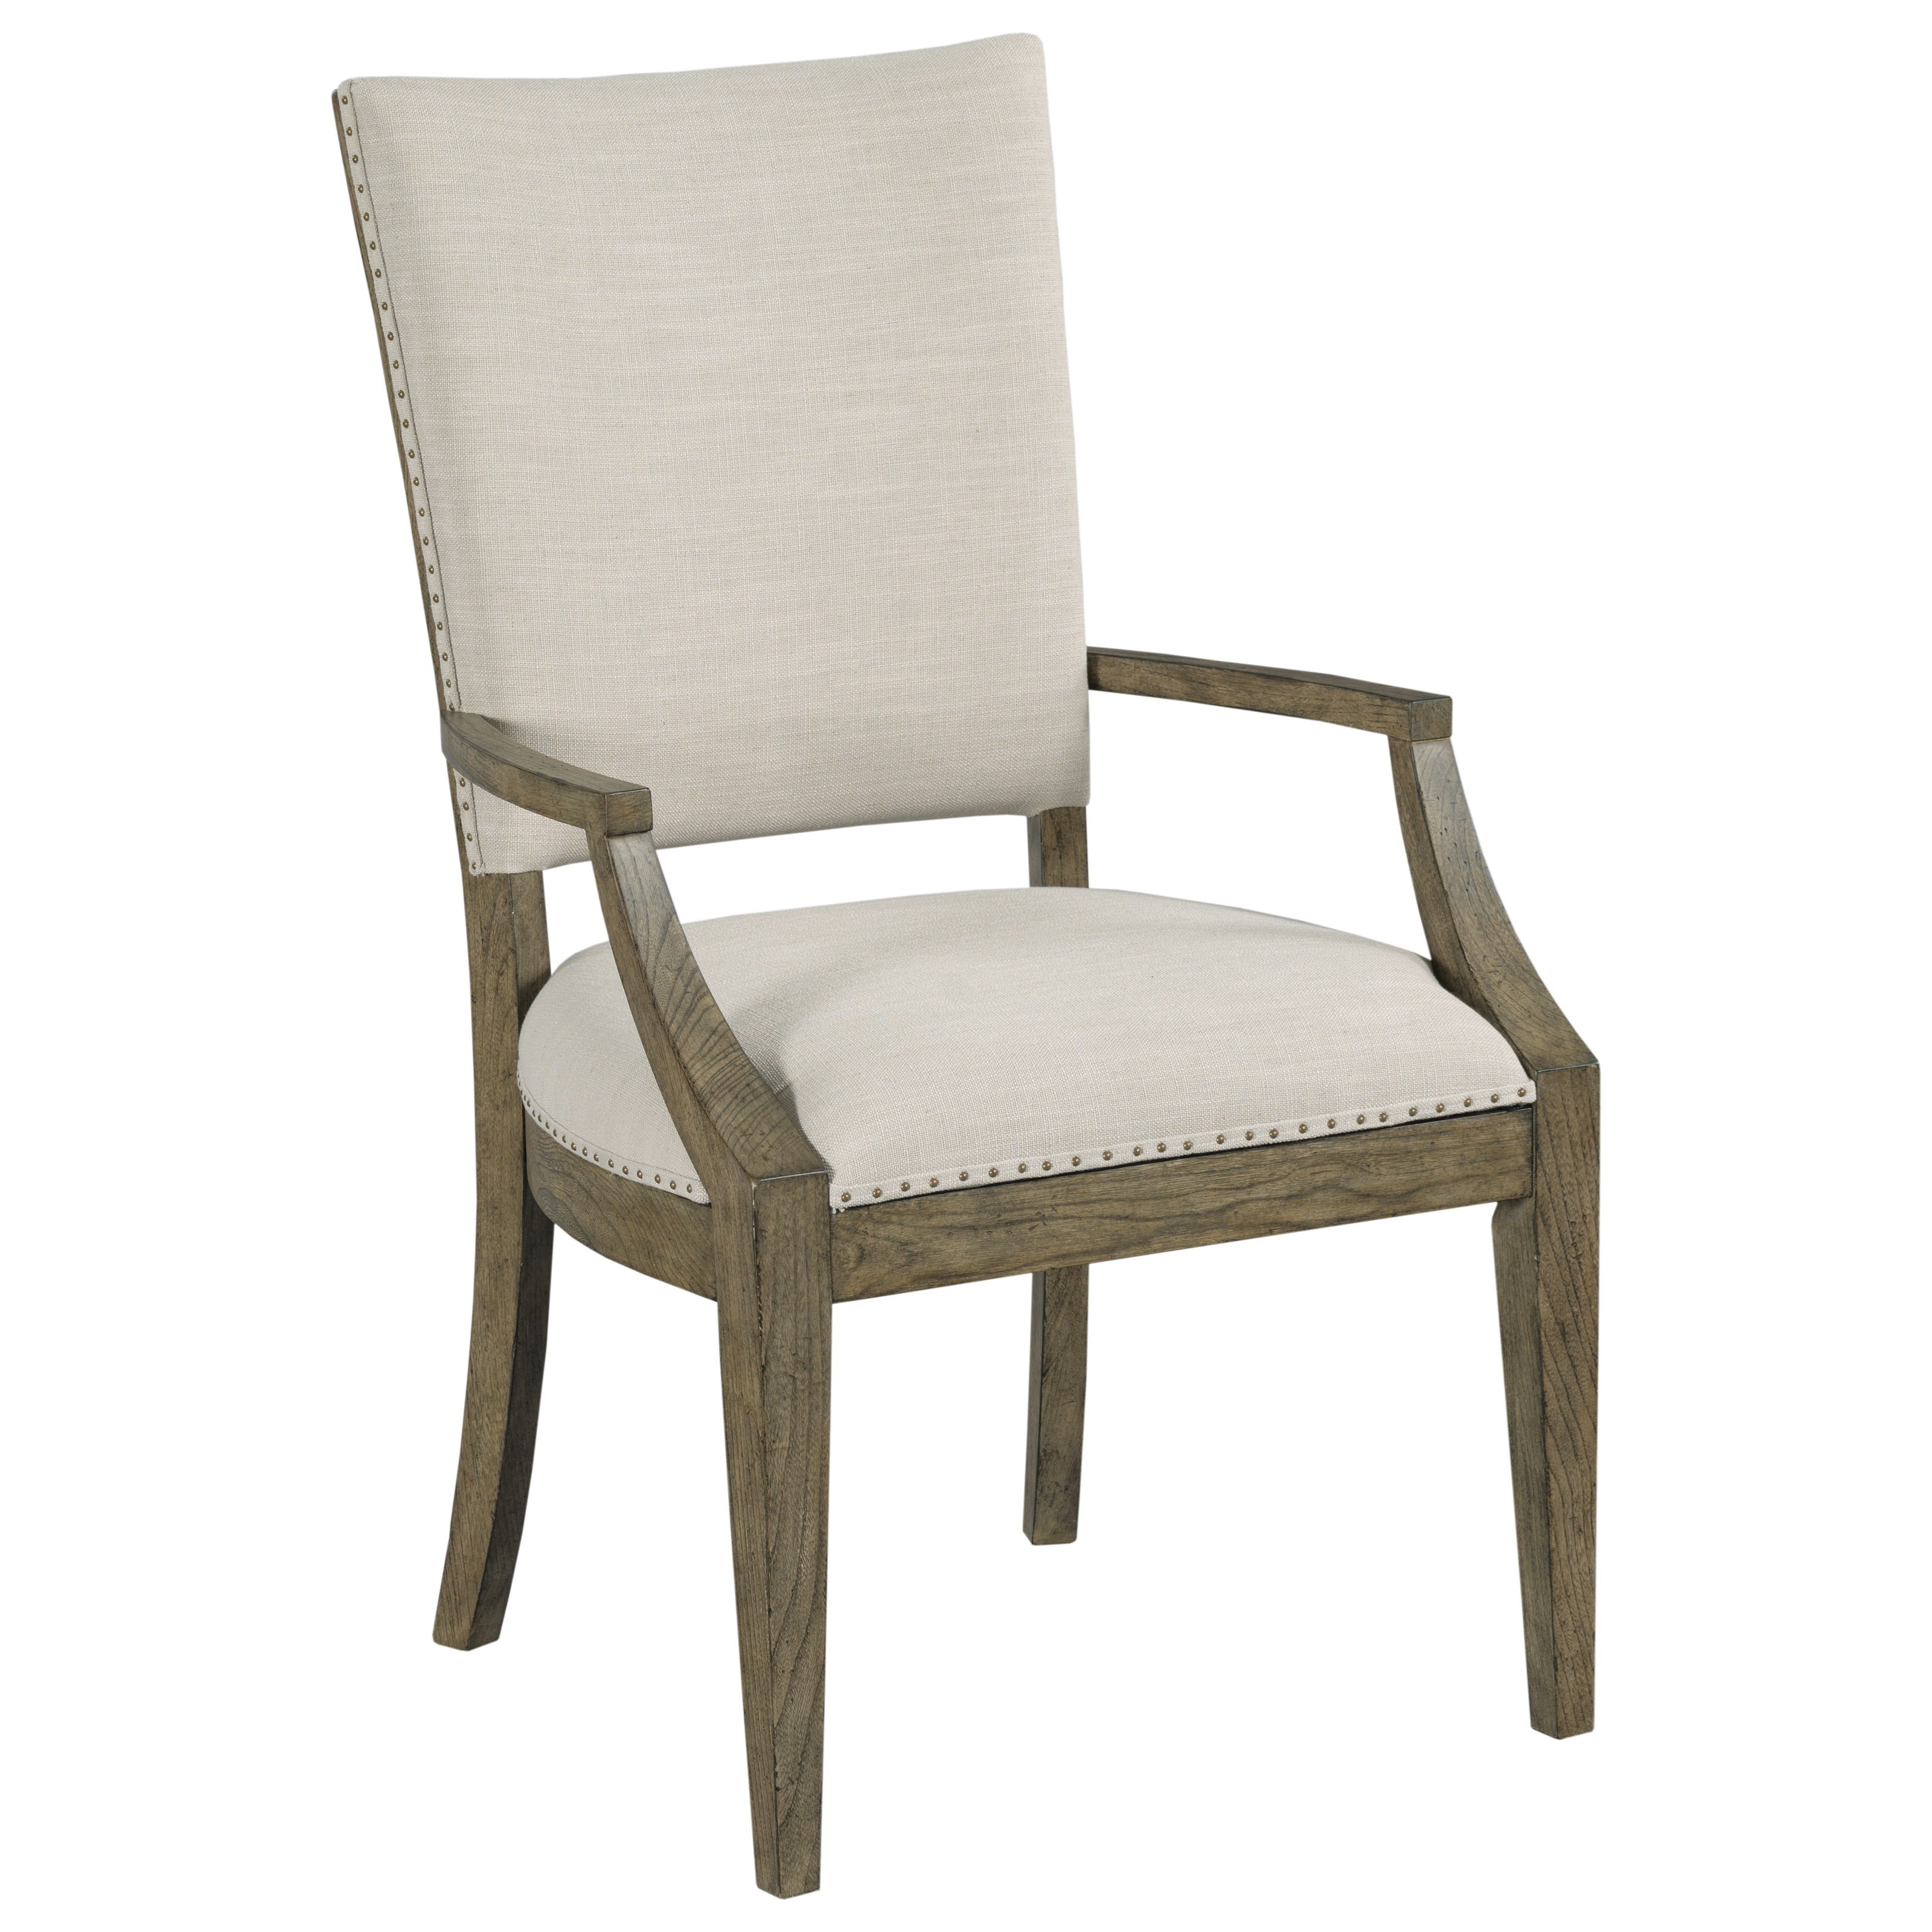 Plank Road Howell Arm Chair                             by Kincaid Furniture at Northeast Factory Direct